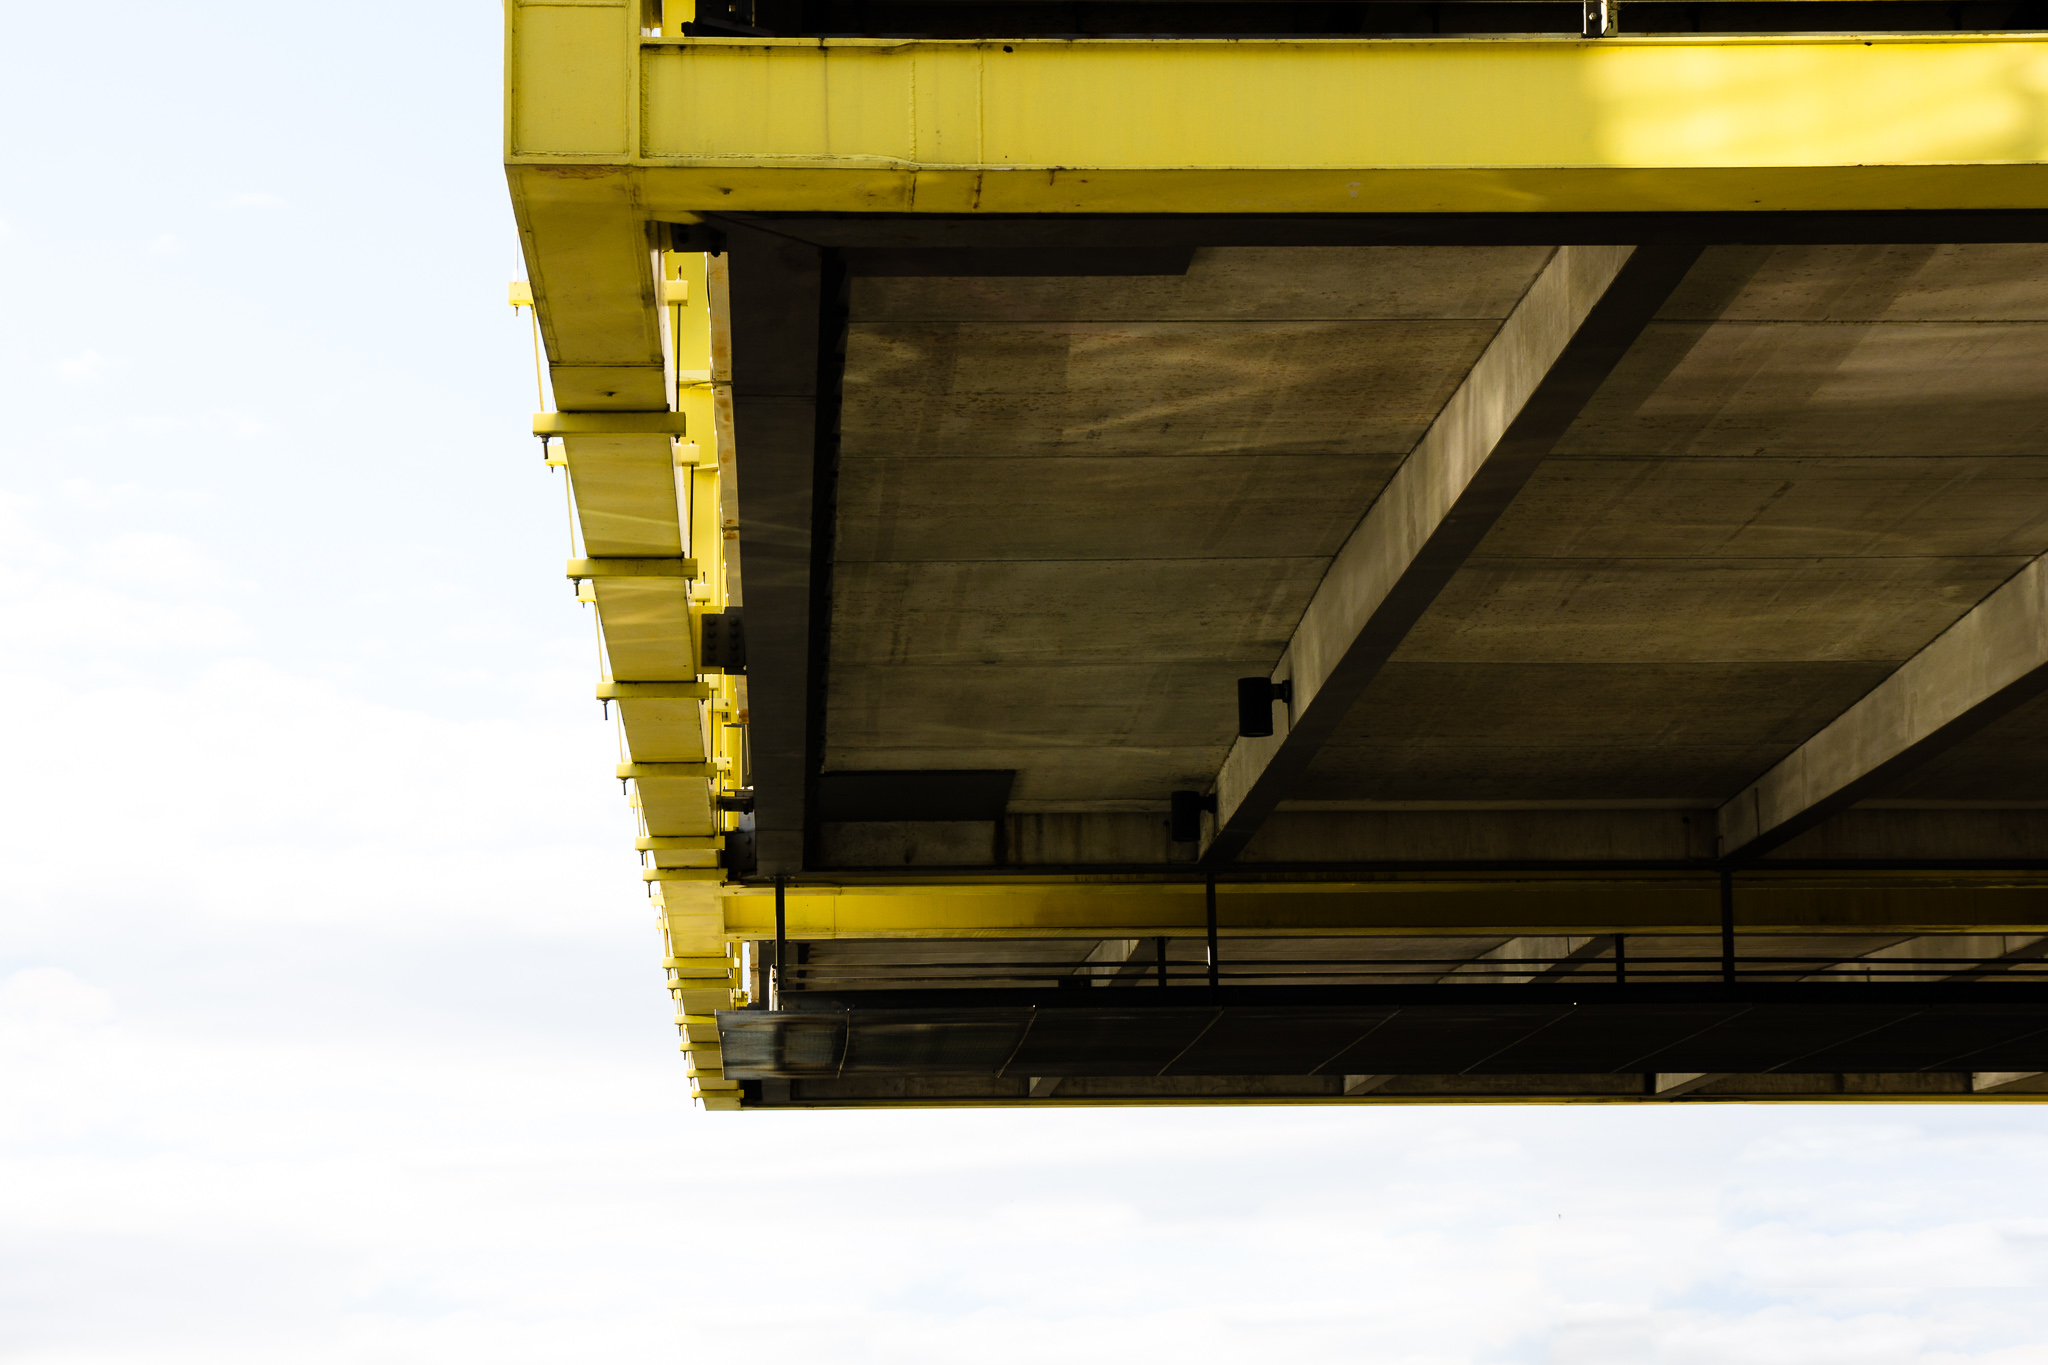 -Hovering Parking Deck - LEJ- Canon EOS 60D (Sigma 17-70mm F2.8-4 DC Macro C, 49 mm, f/8.0, 1/60s, ISO100)